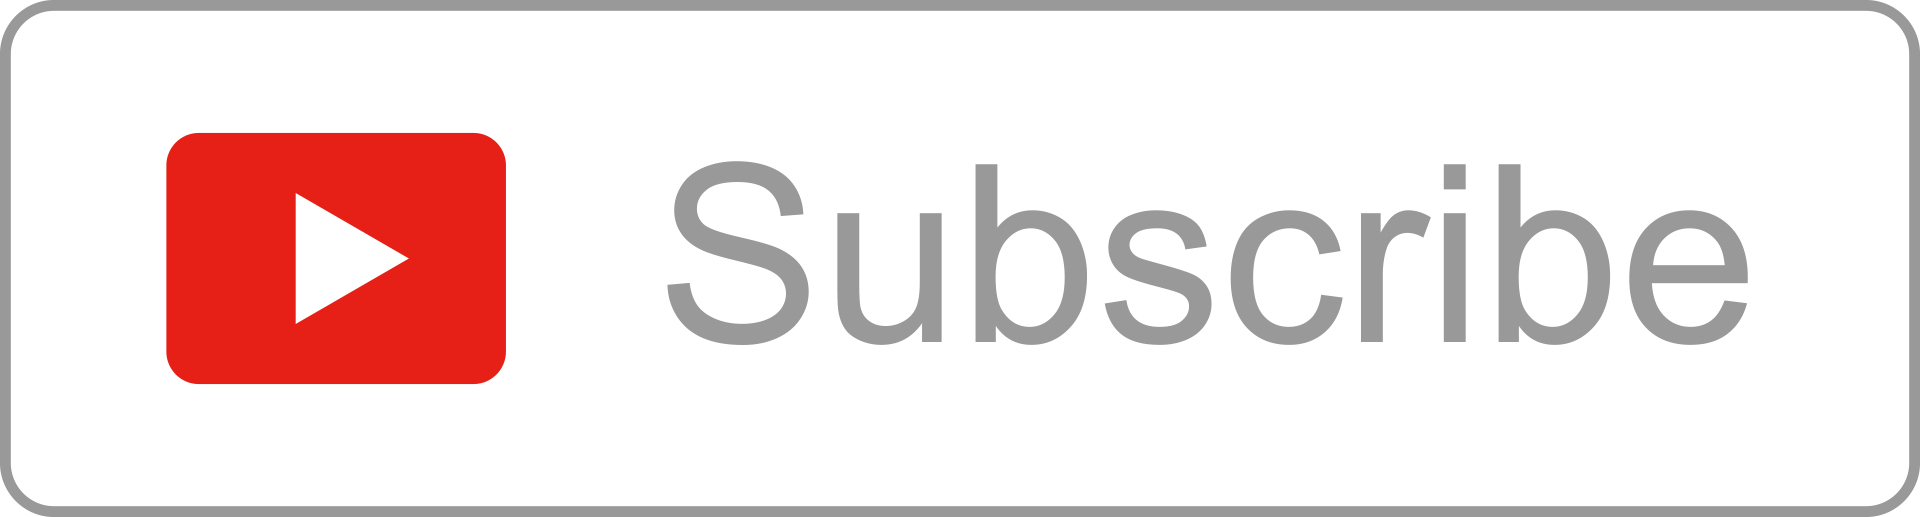 Free Outline YouTube Subscribe Button By AlfredoCreates.